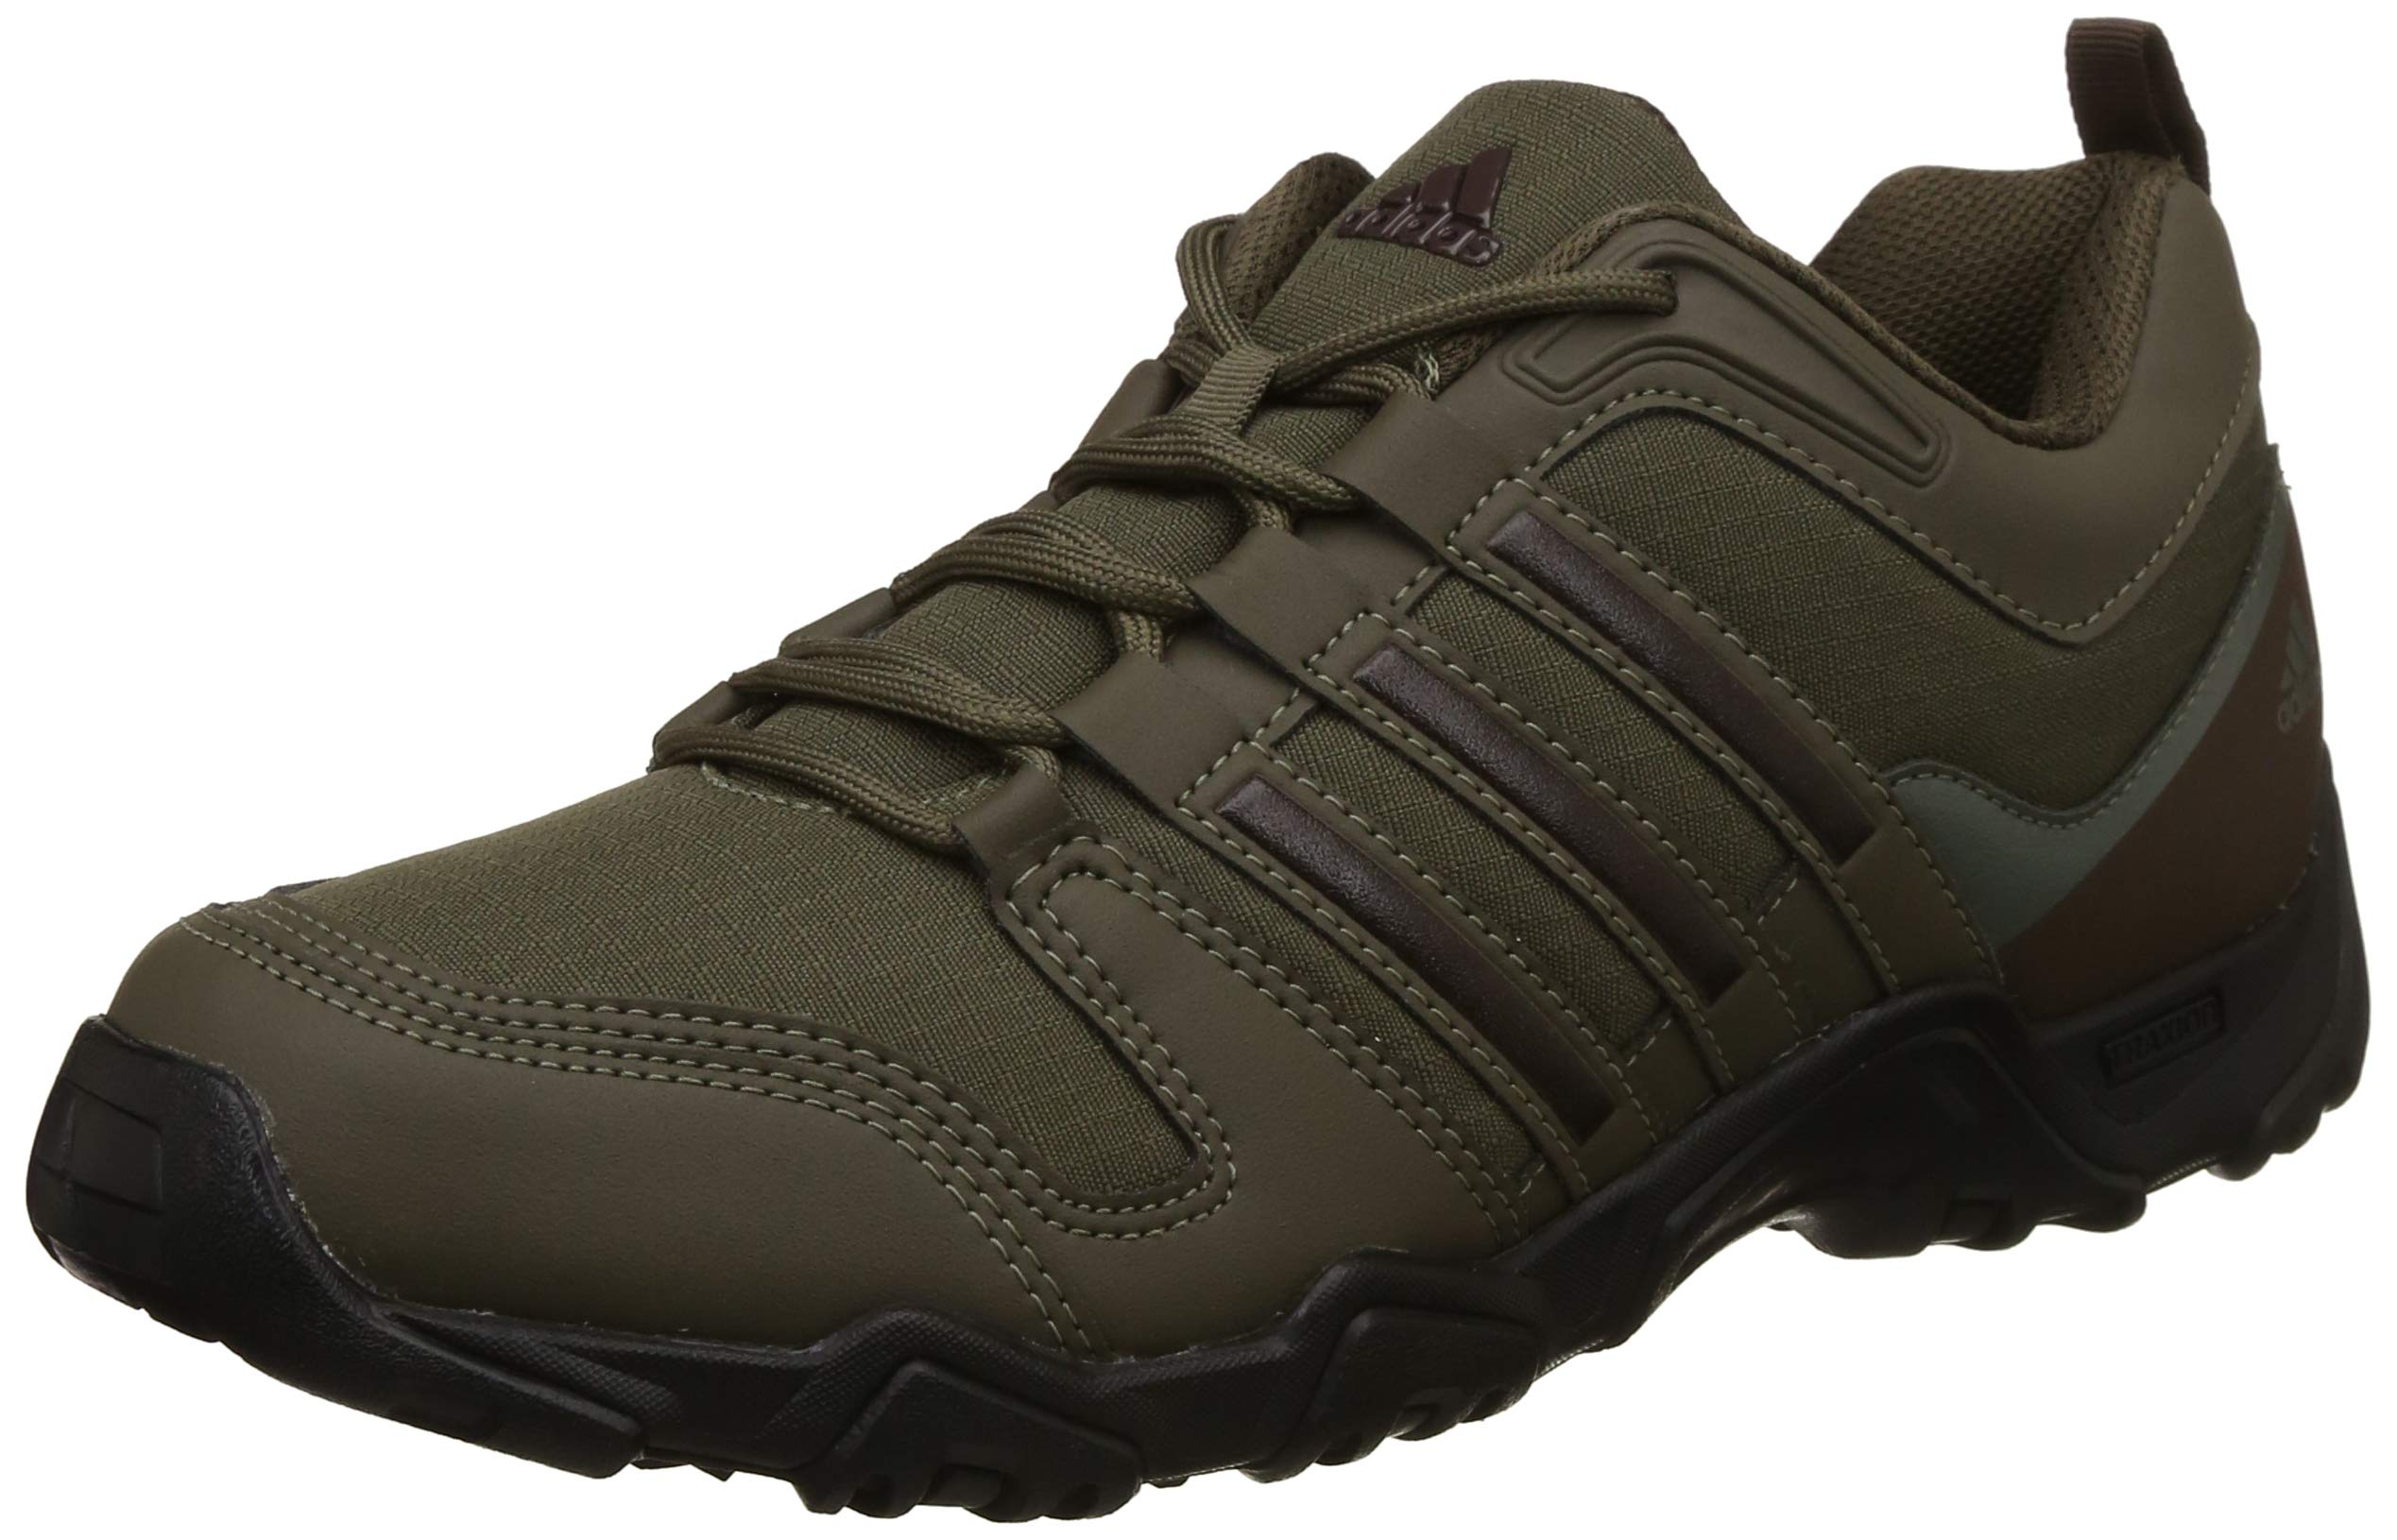 Adidas Men's Agora 1.0 Multisport Training Shoes product image